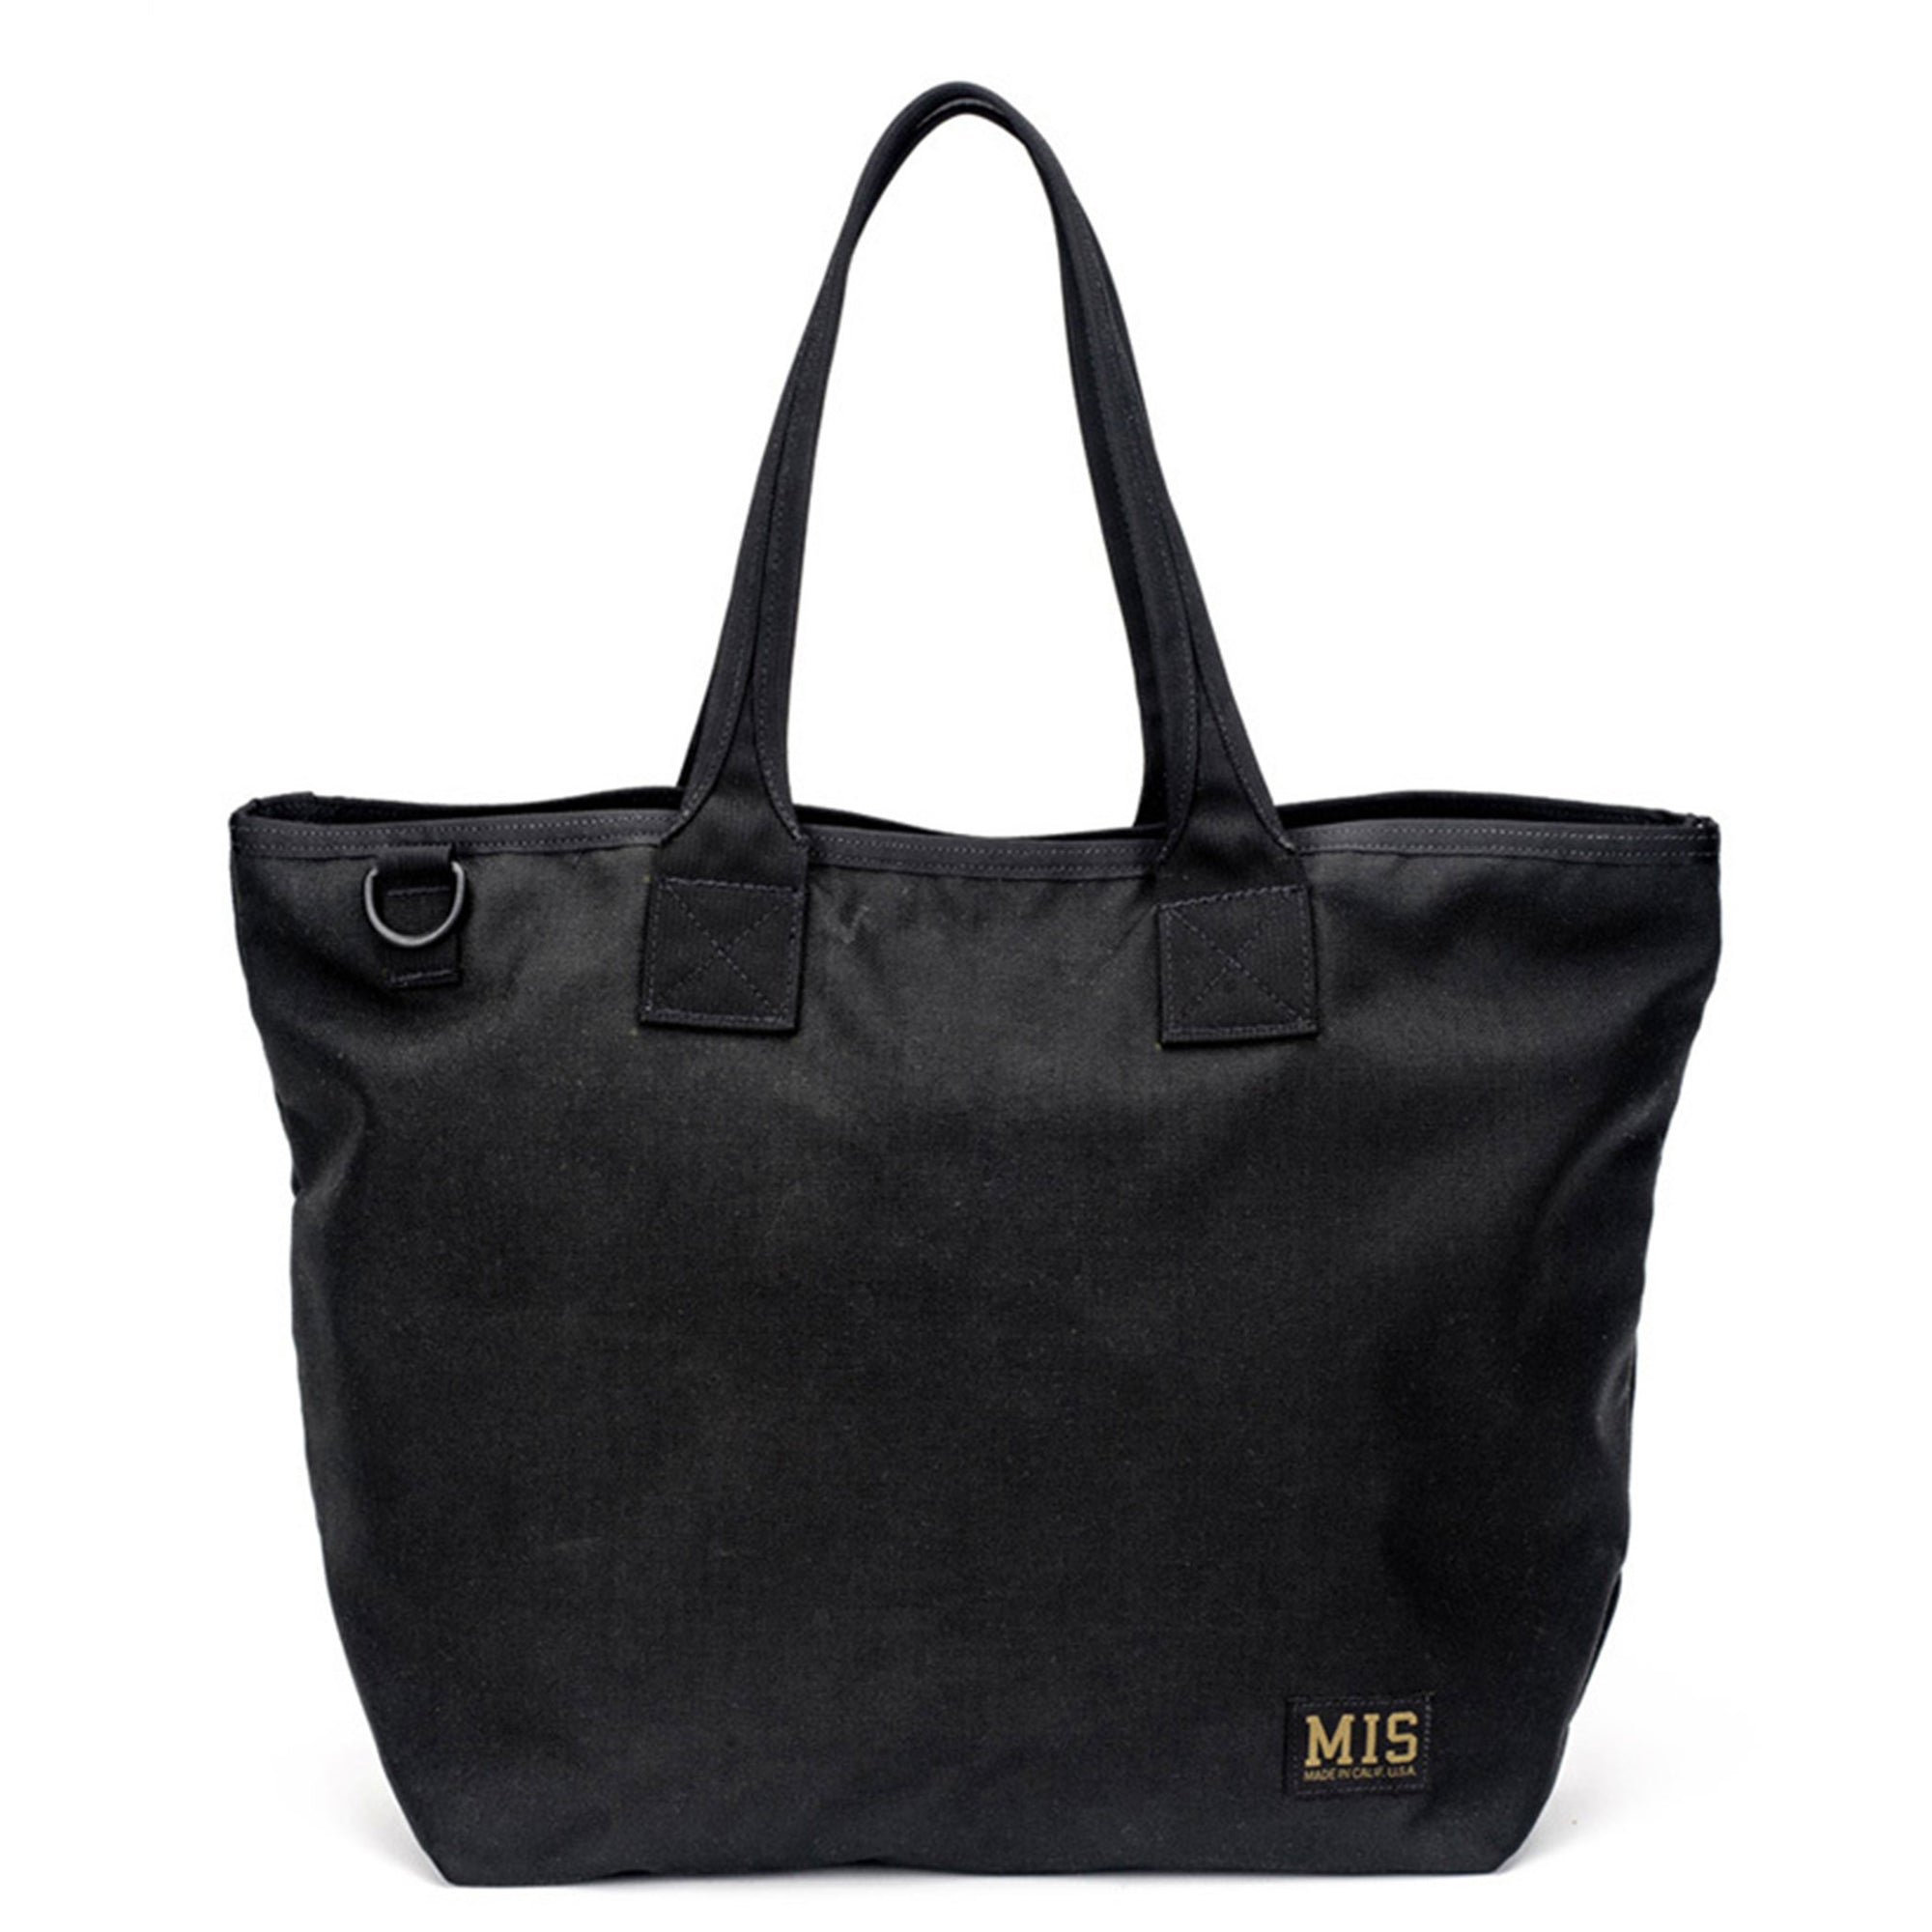 MIS Tote Bag in Black